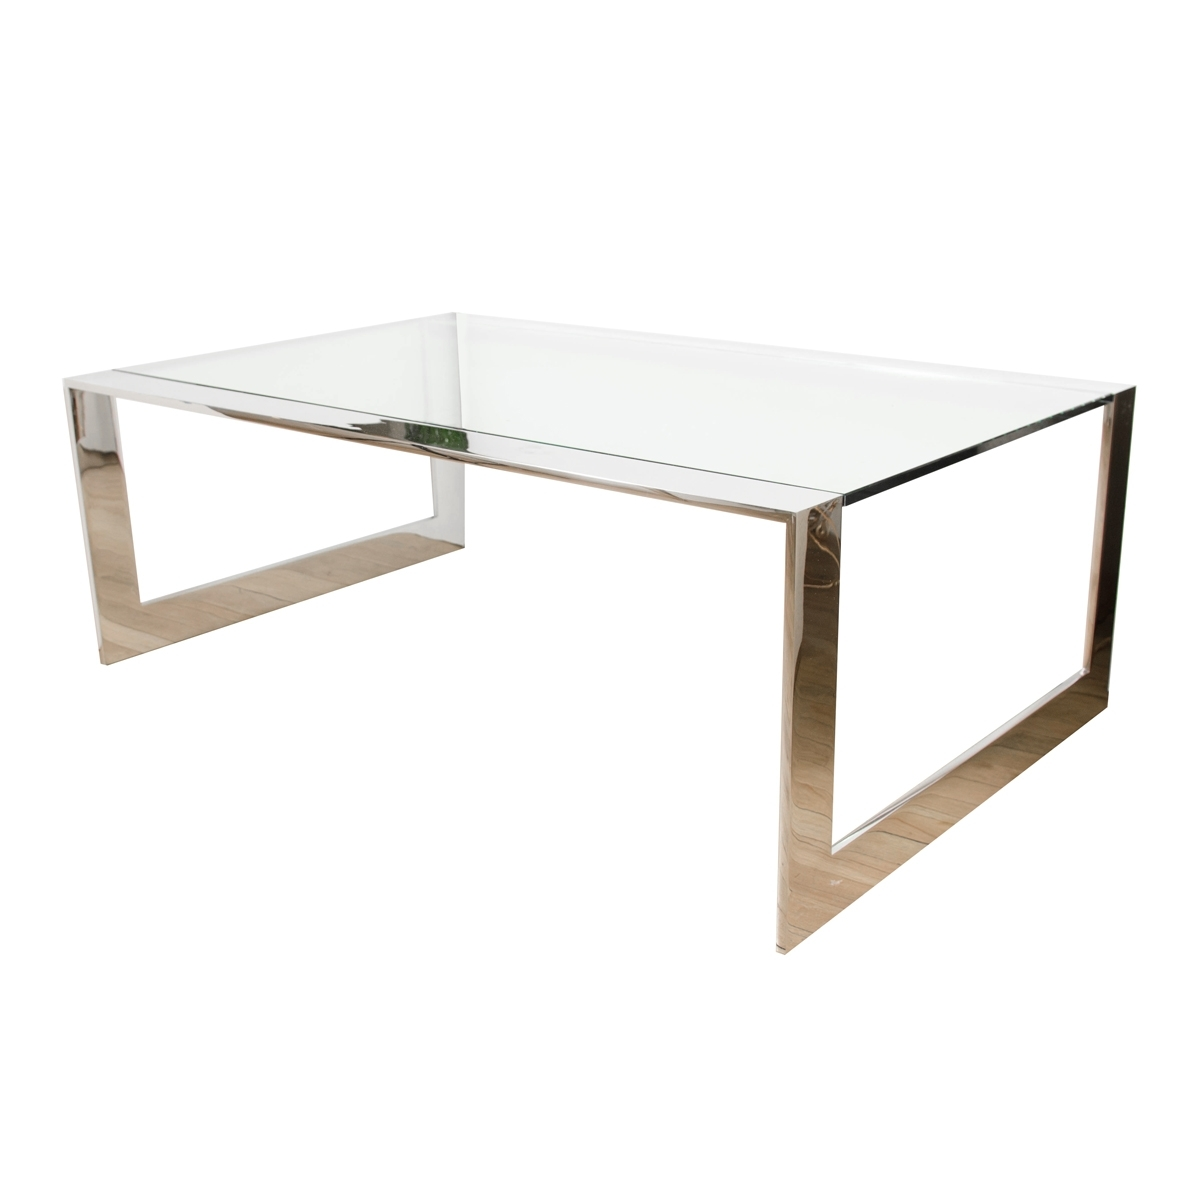 Chrome Waterfall Coffee Table With Glass Top | Coffee Tables | John inside Waterfall Coffee Tables (Image 5 of 30)